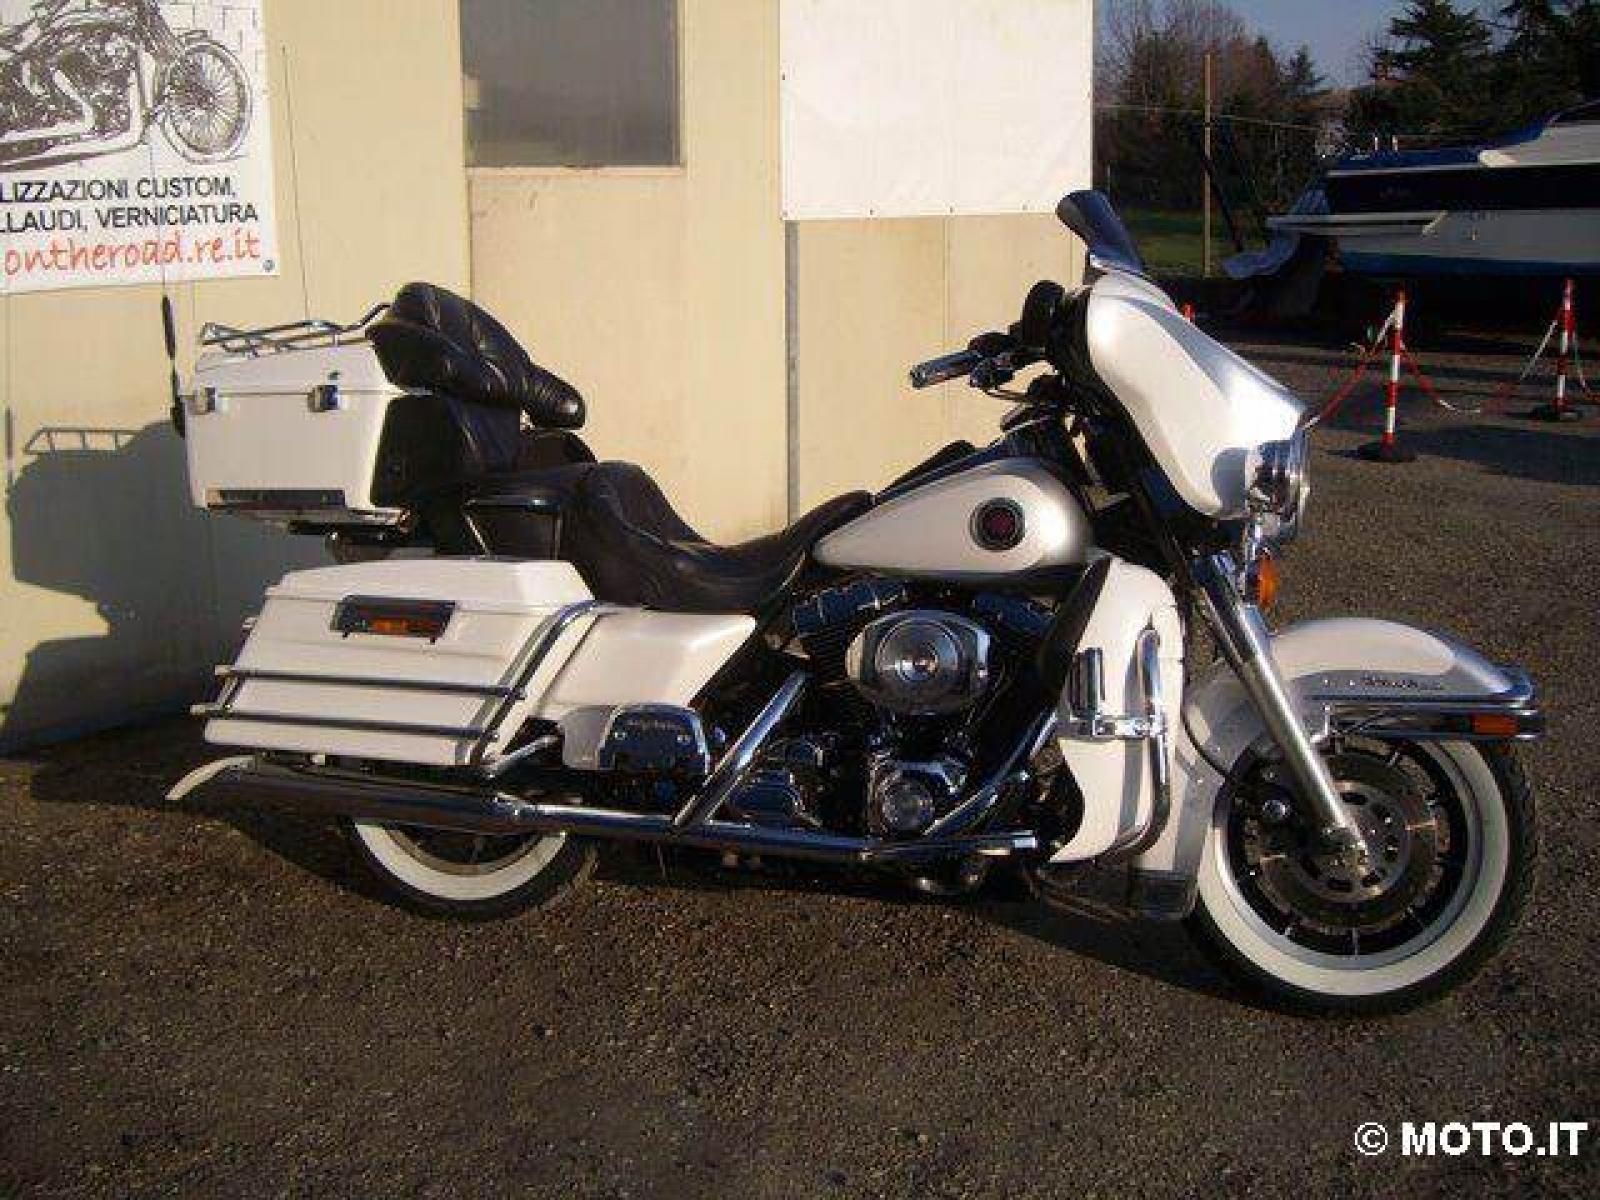 Harley-Davidson FLHTC 1340 Electra Glide Classic 1991 images #79908